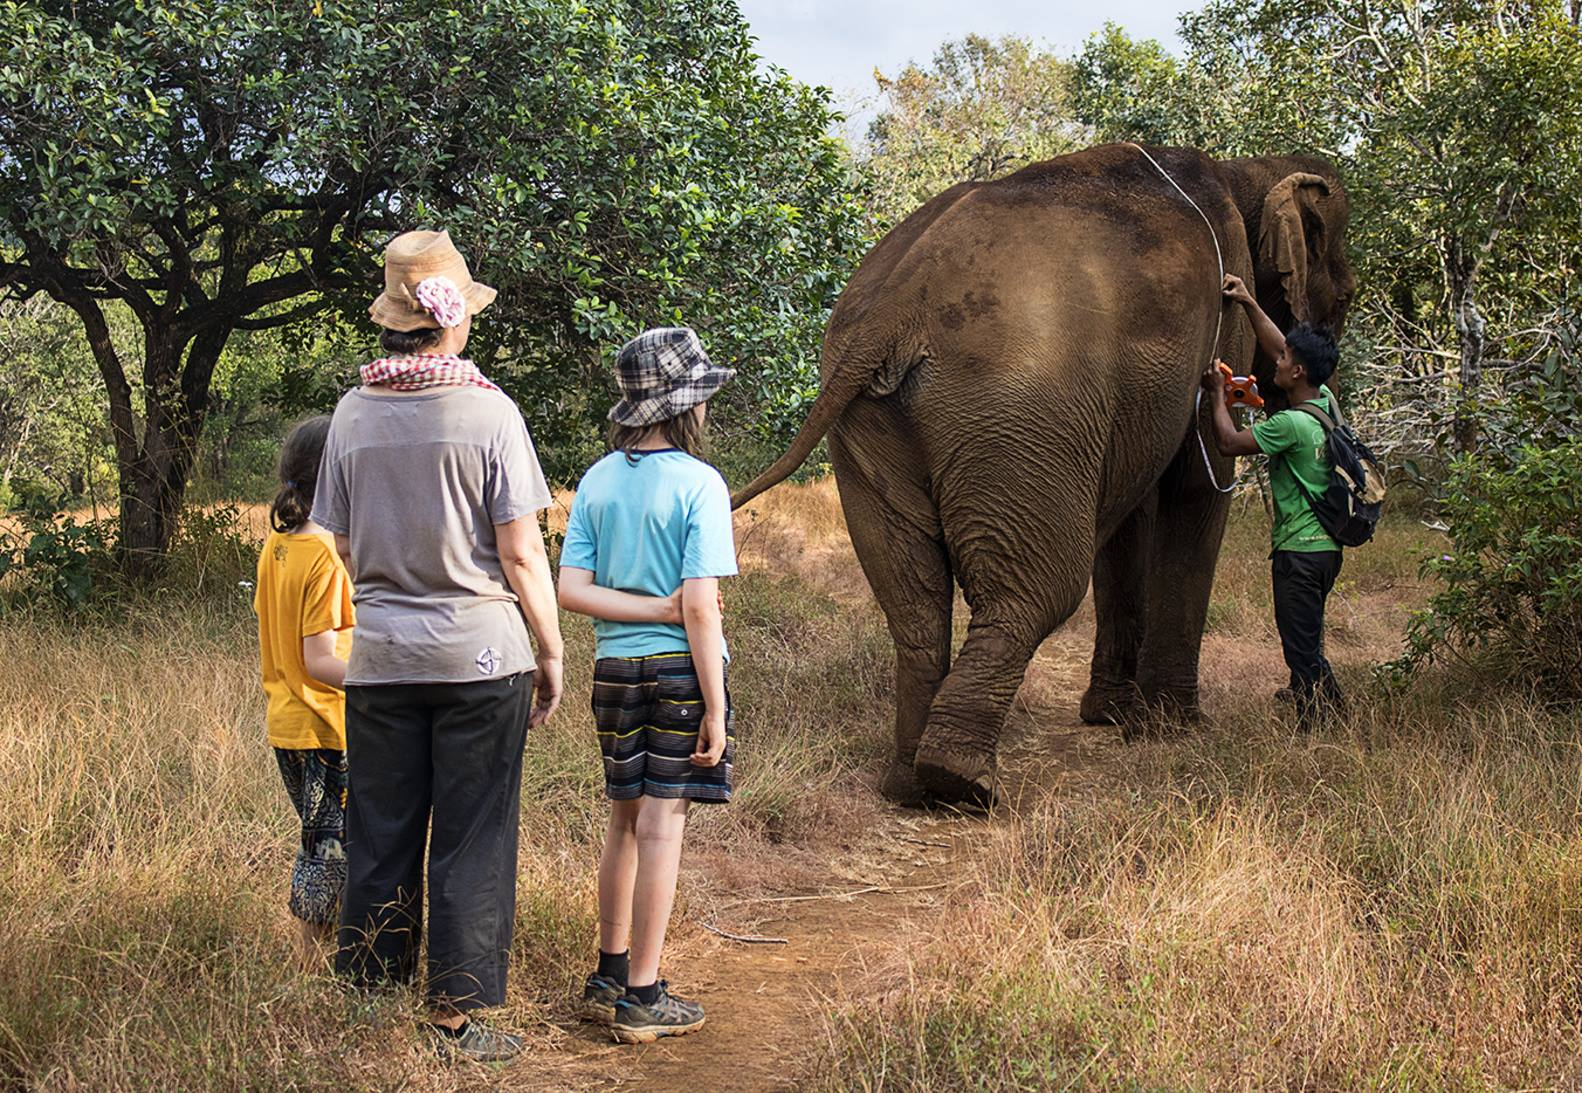 Caring for the elephants at the sanctuary